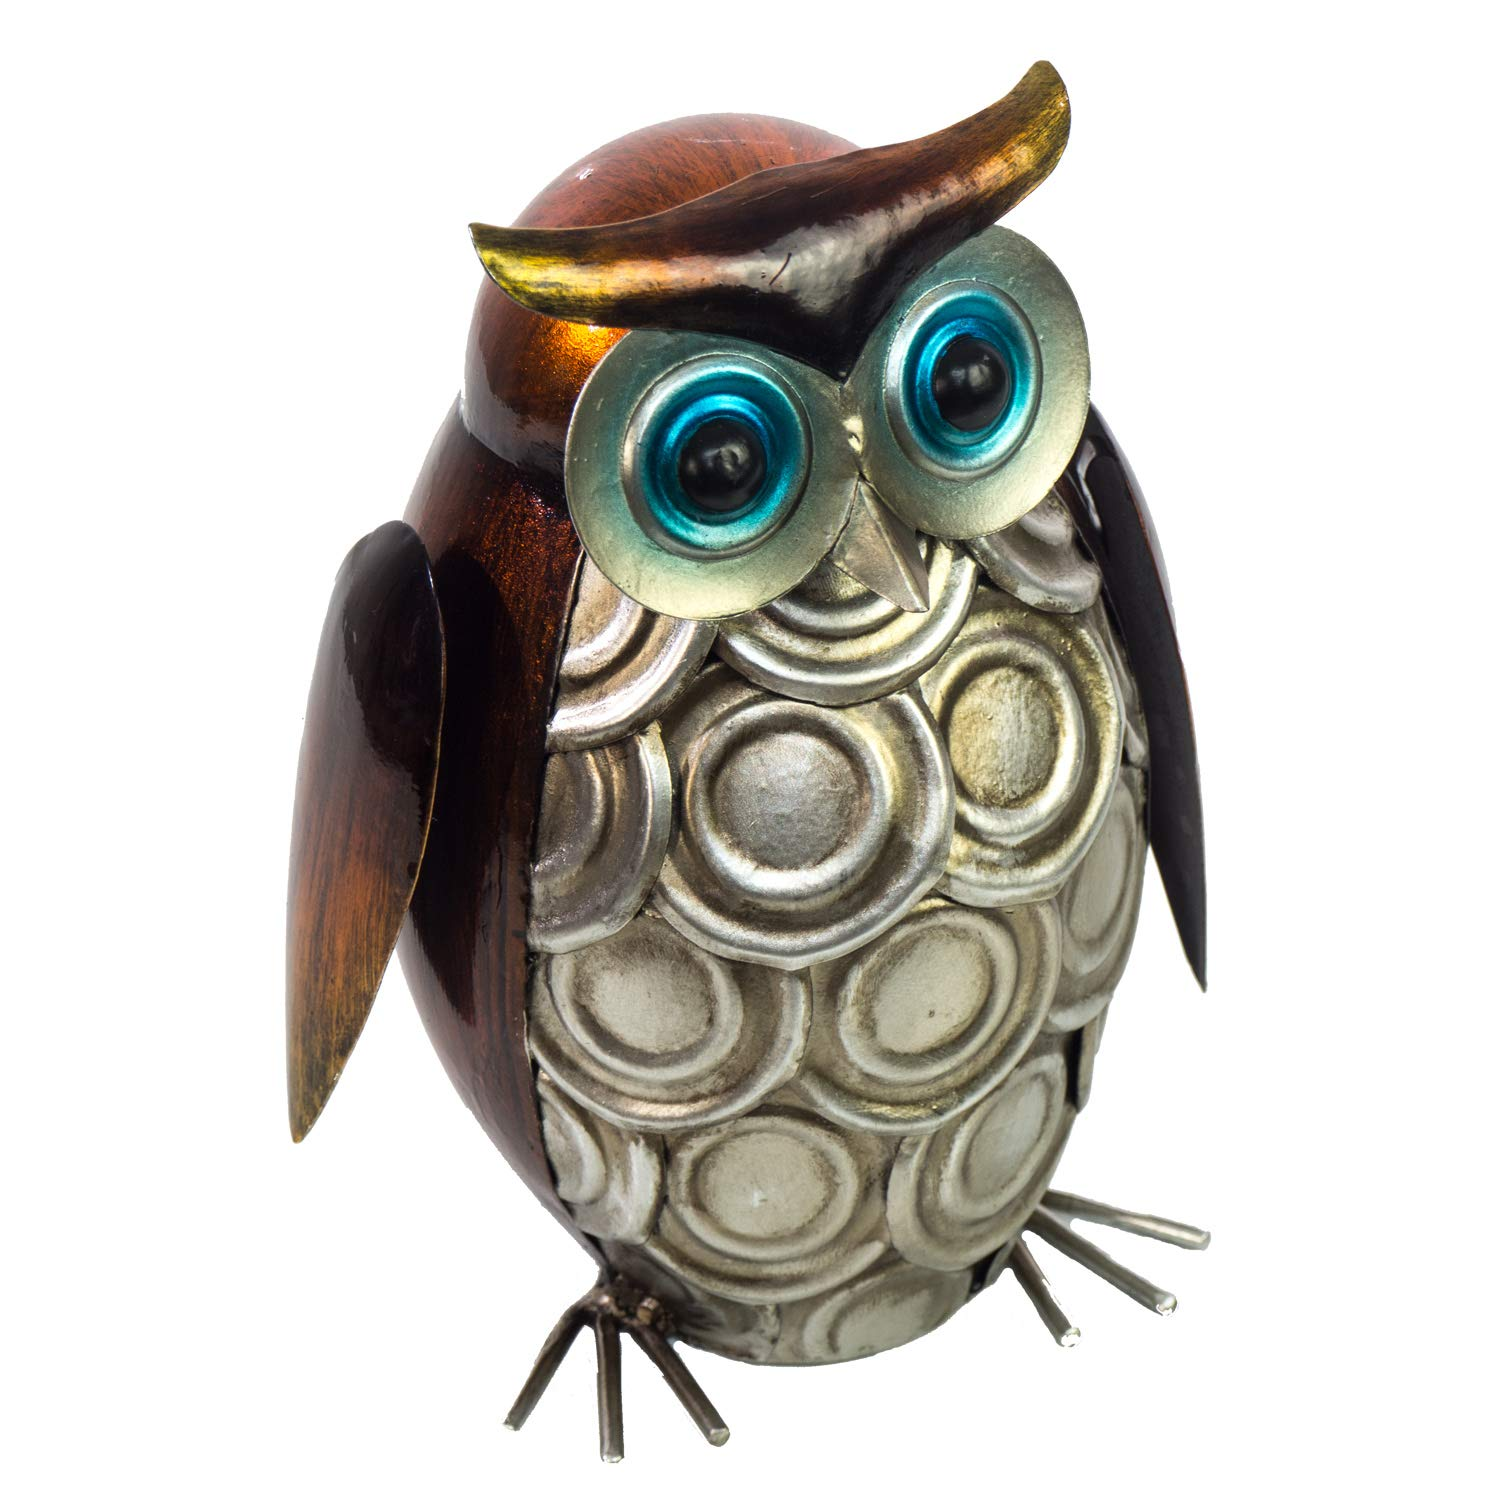 "Owl Ornament 3D Metal Design - Hand-Painted - 7"" High x 4"" Round - Indoor or Outdoor Use - Popular Home Decor – Table Decoration in Contemporary Farmhouse Style"